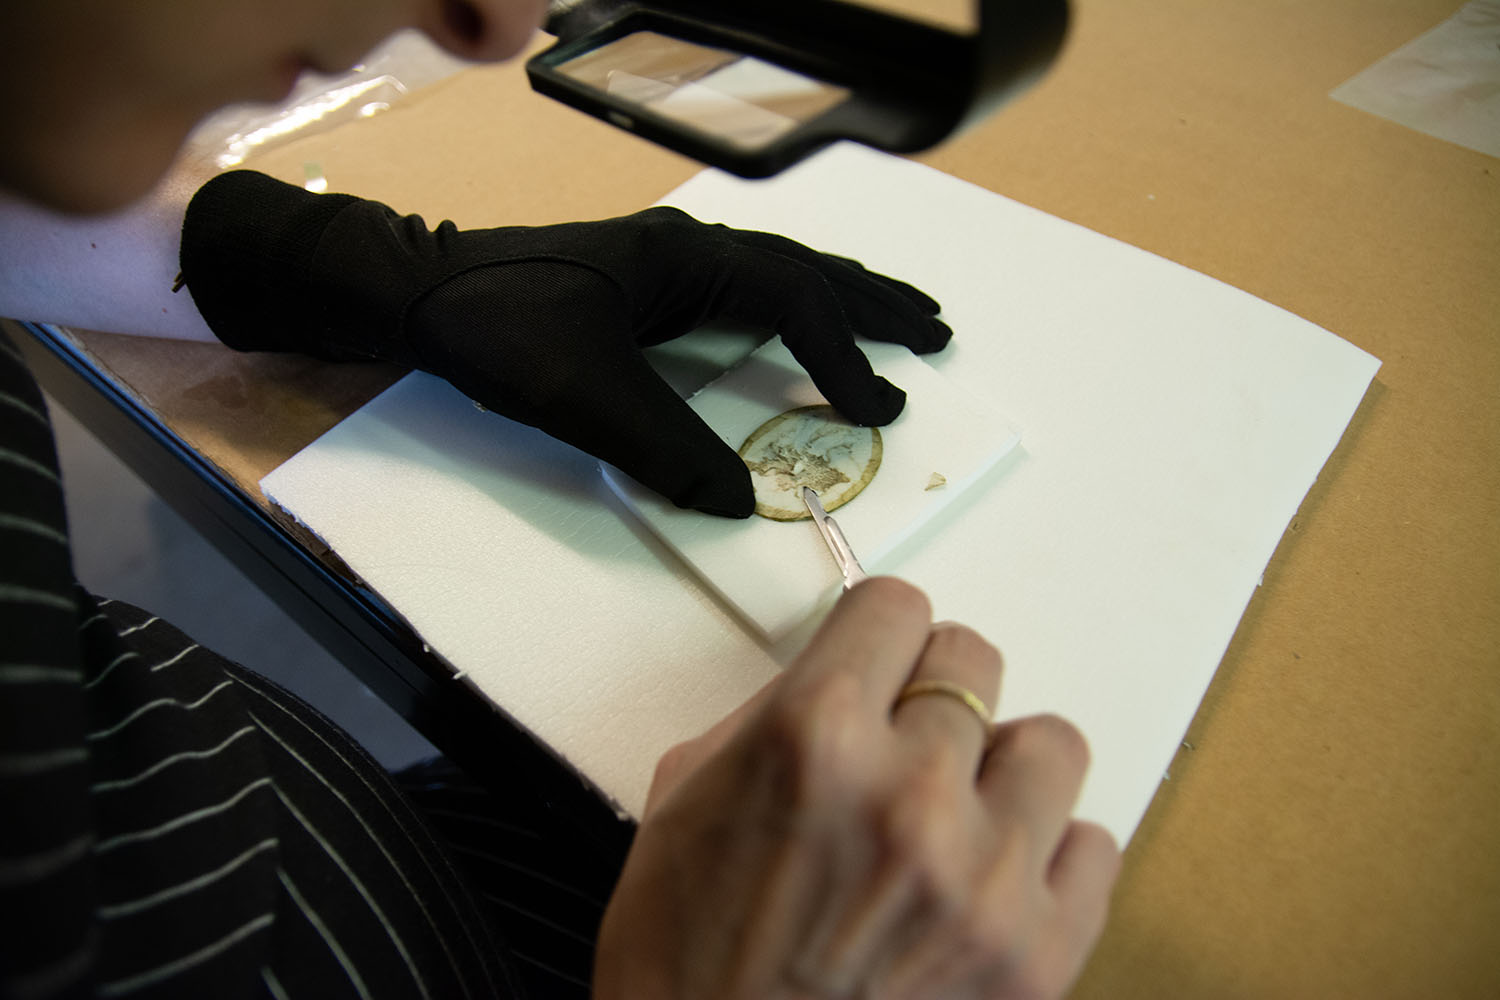 Paring down old adhesive and paper remnants. Image courtesy of Alba Art Conservation.